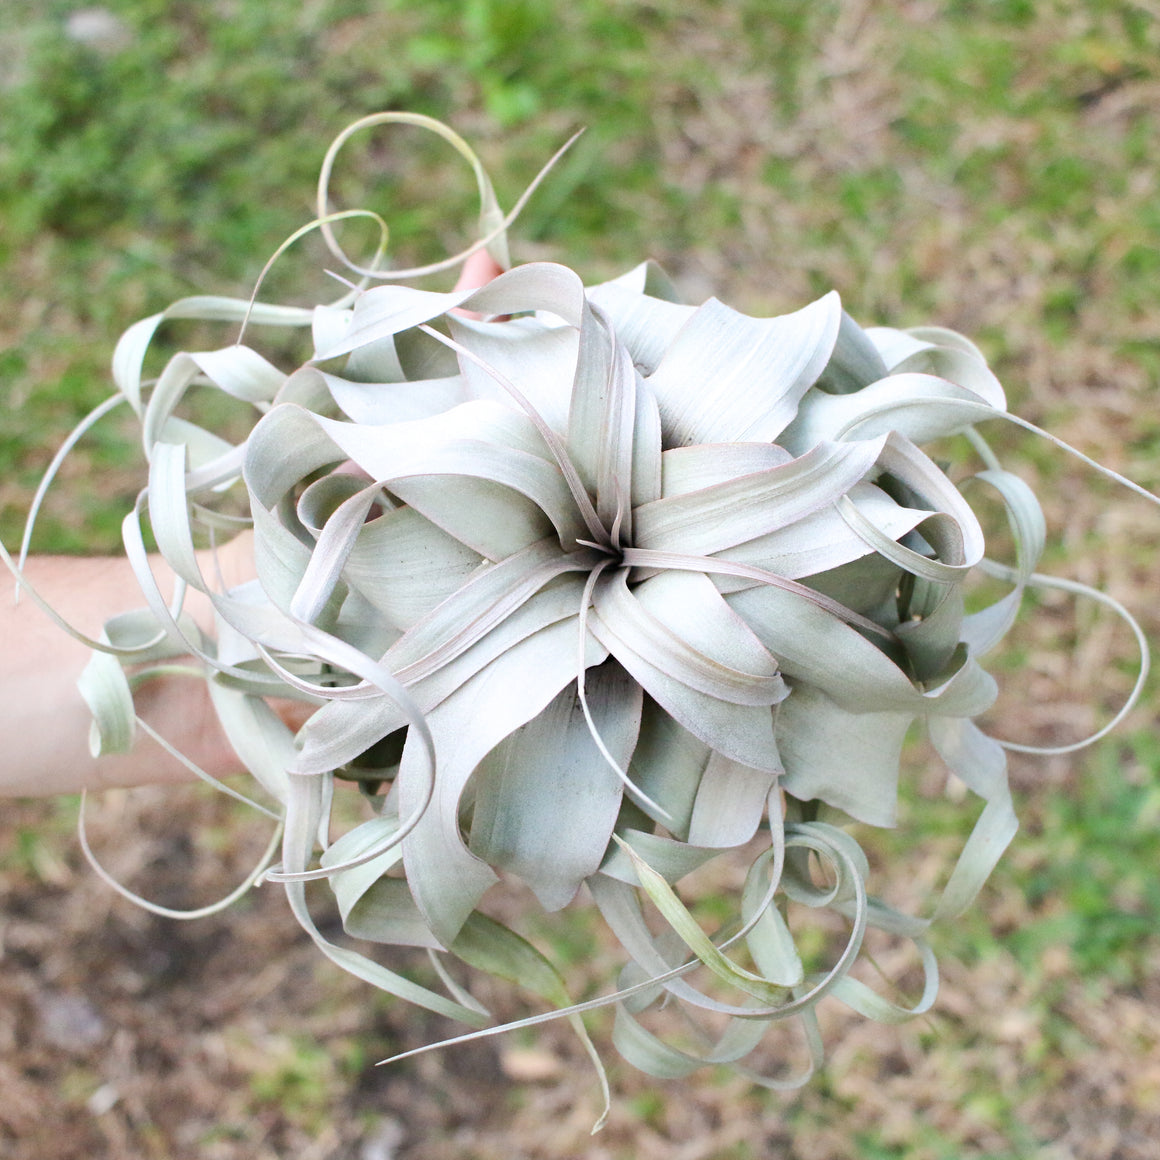 Jumbo Curly Tillandsia Xerographica - Limited Quantities - 6 - 8 Inches Wide with Cascading Leaves